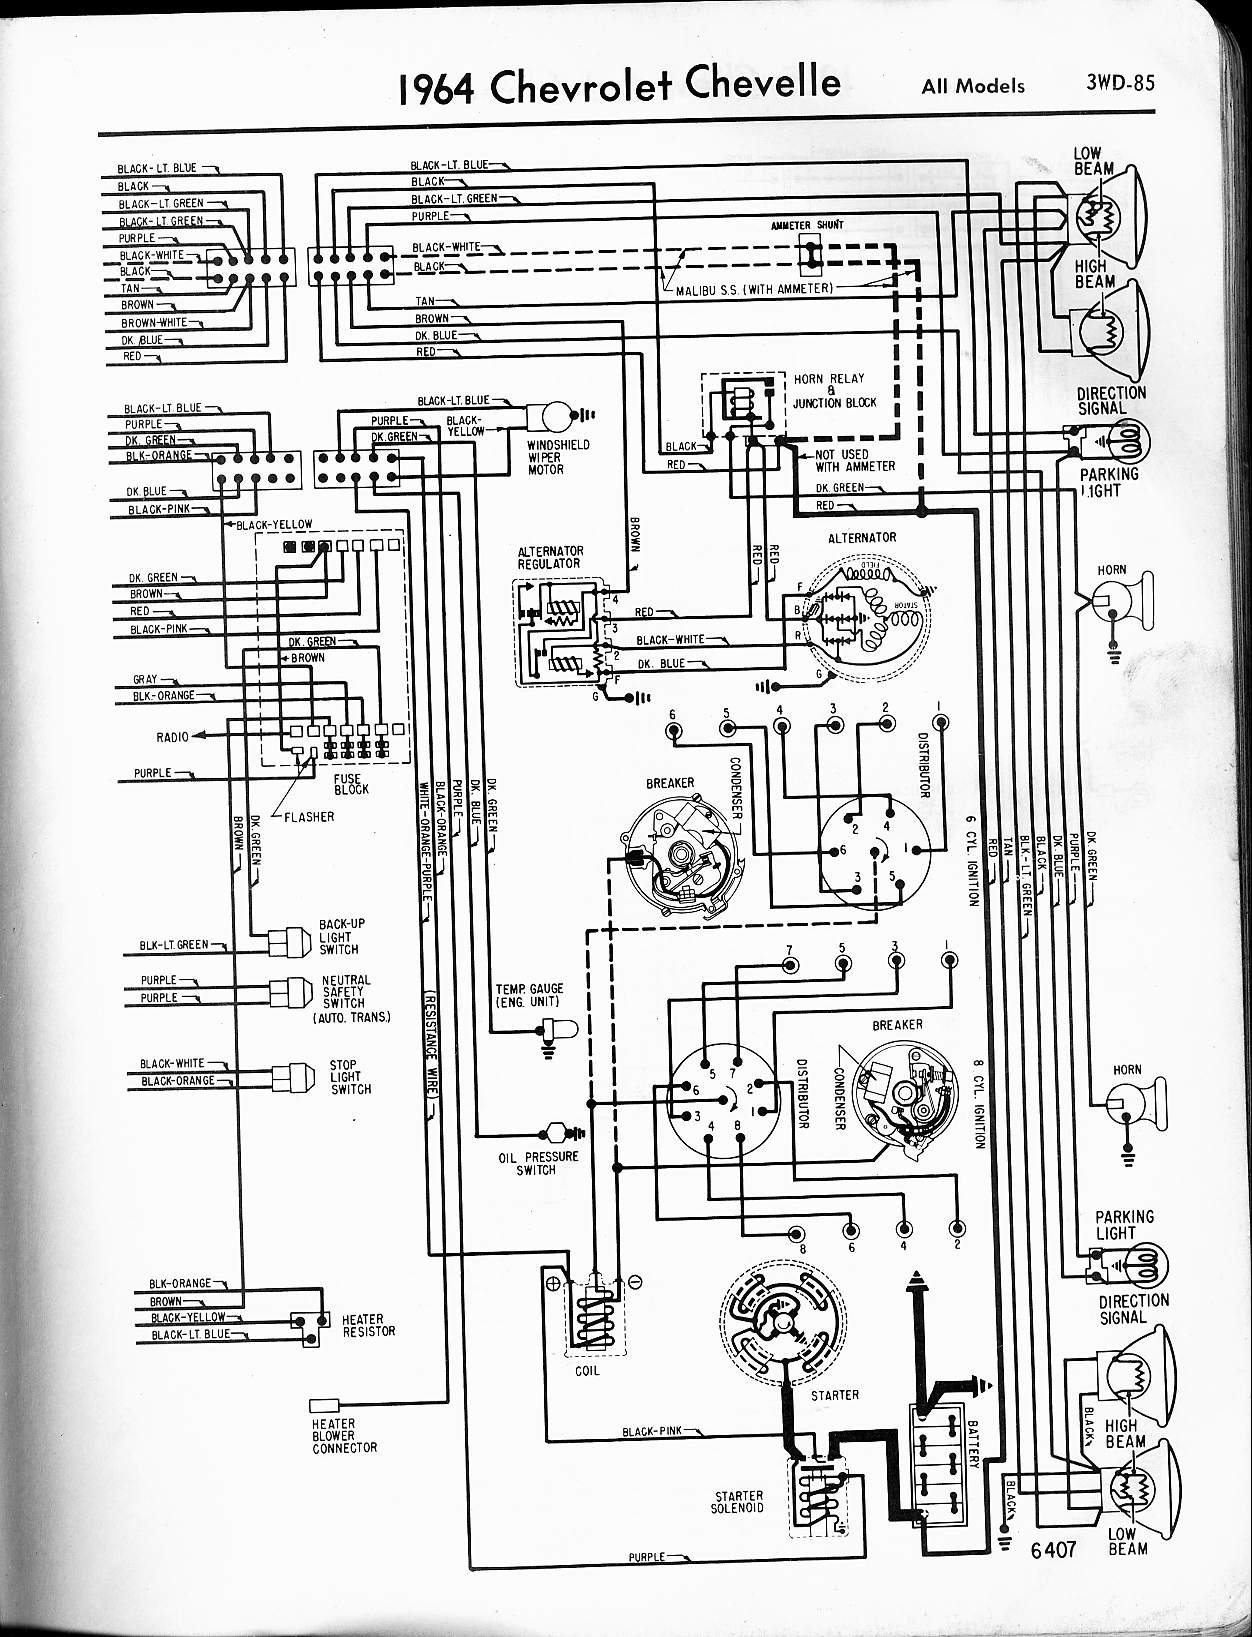 MWireChev64_3WD 085 chevy diagrams 69 chevelle dash wiring diagram at edmiracle.co